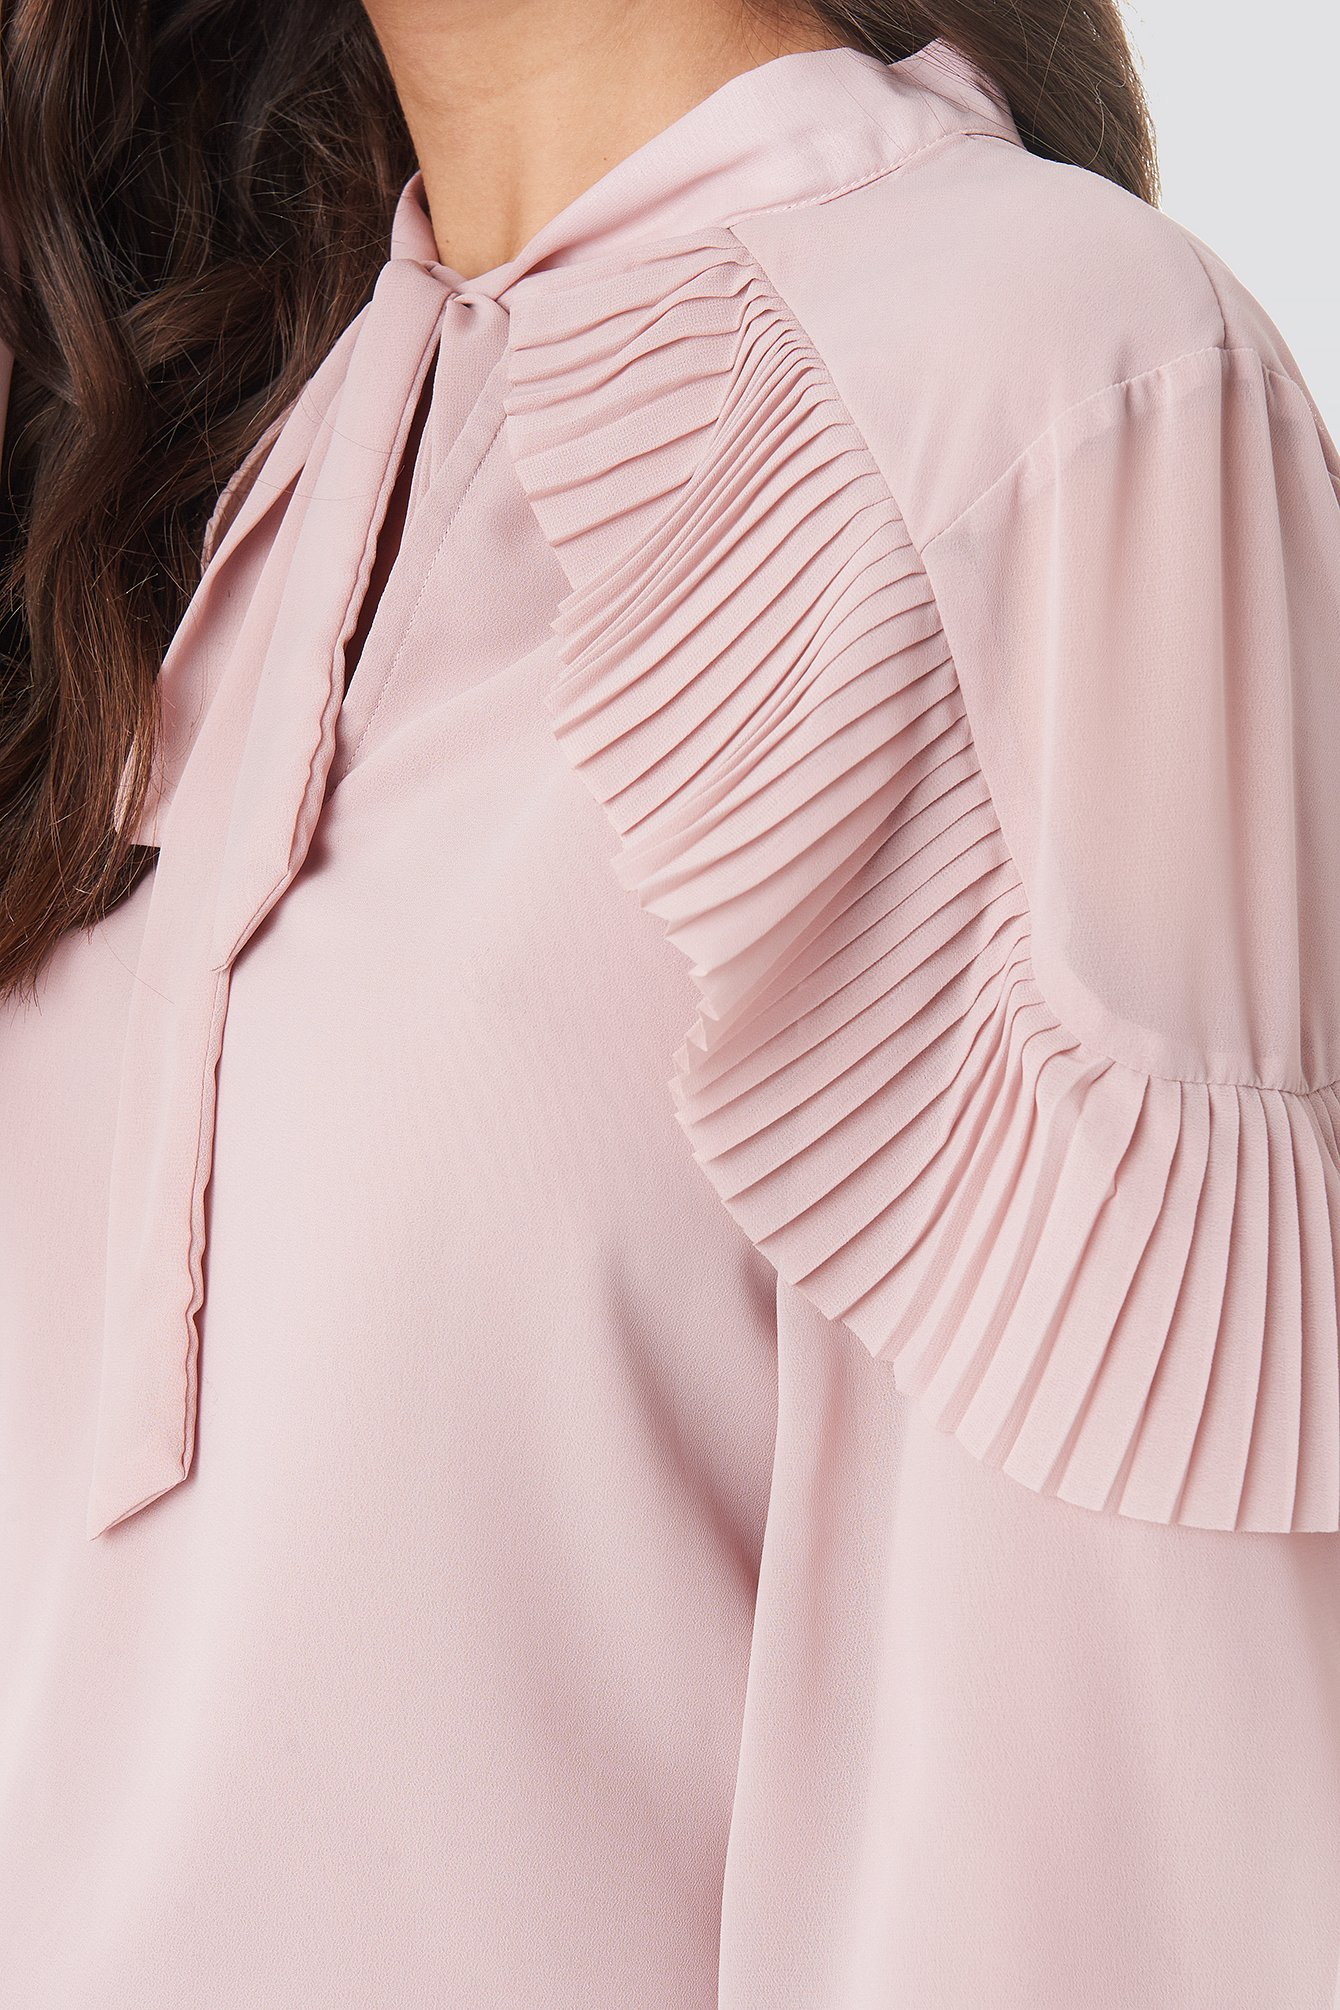 Powder Pink Tie Neck Layered Sleeve Blouse